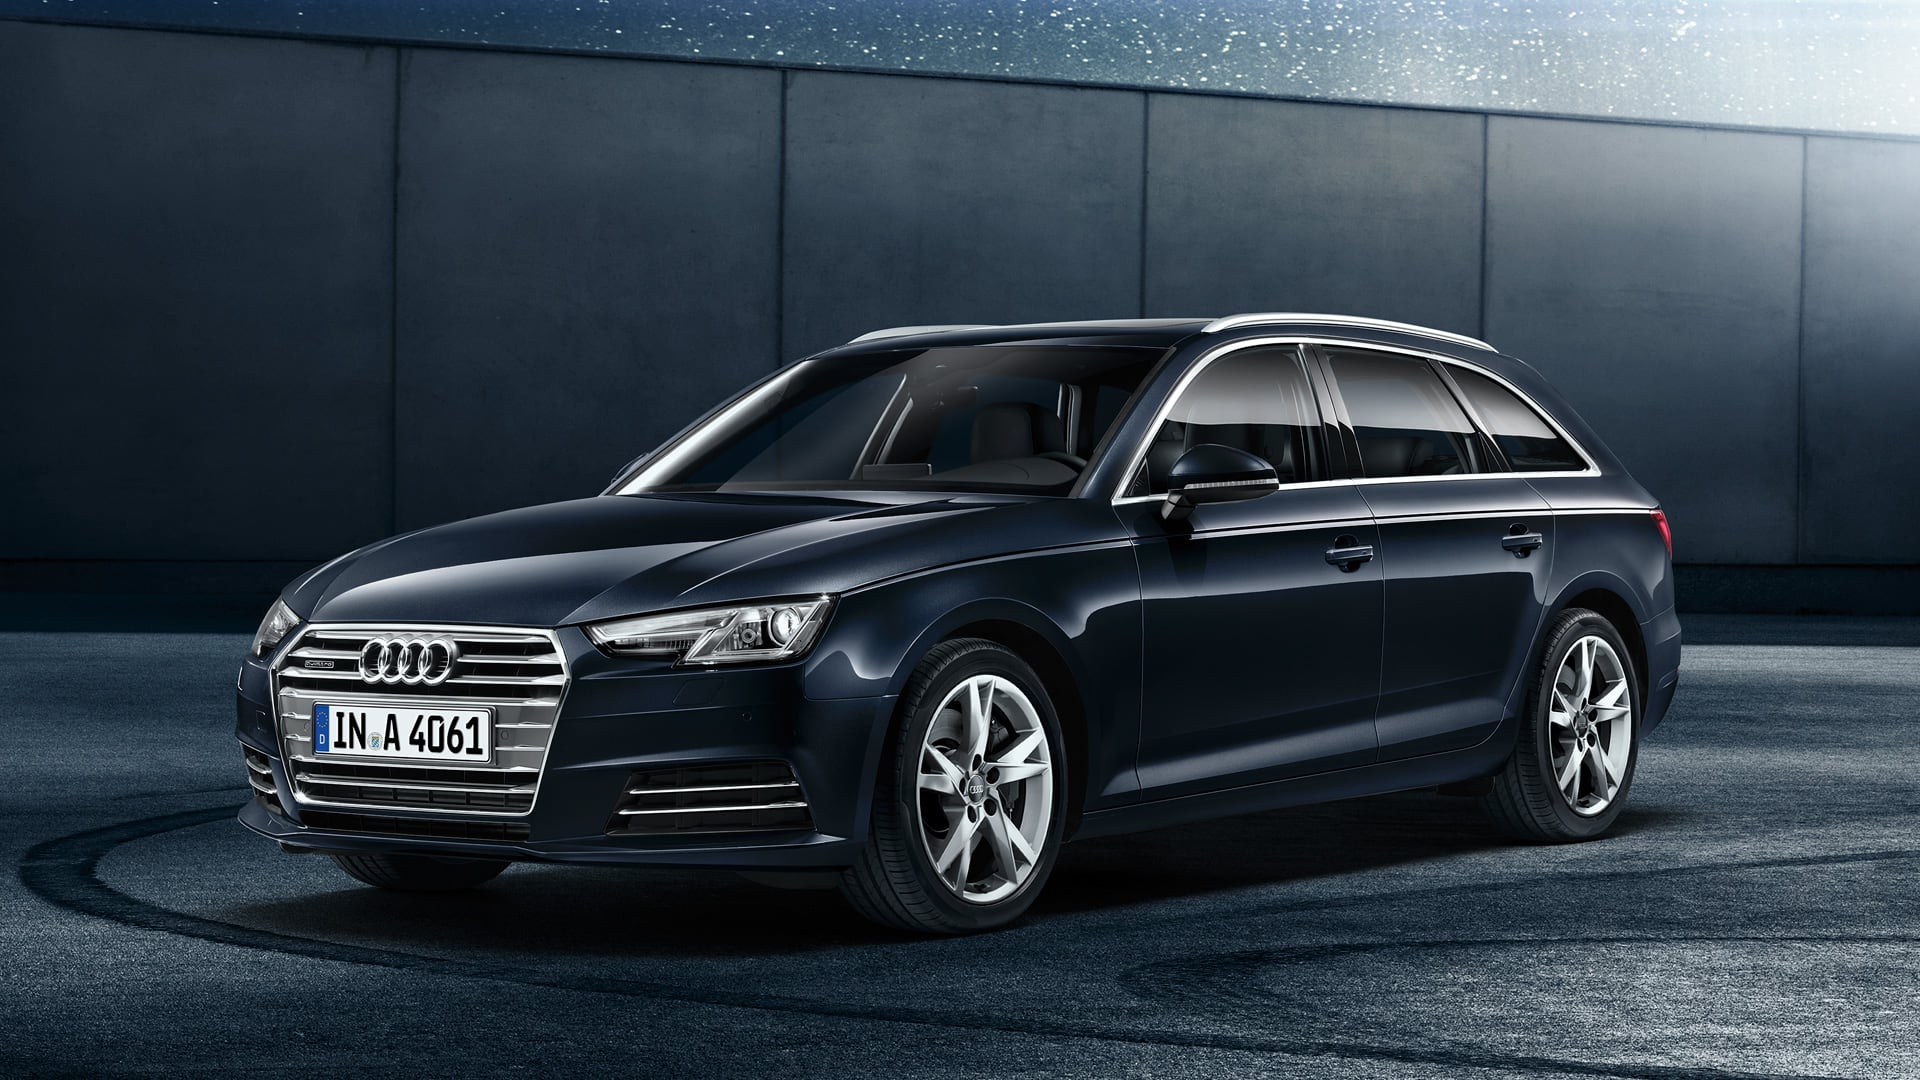 Audi A6 Lease 2018 Audi A5 And S5 Sportback An Audi For